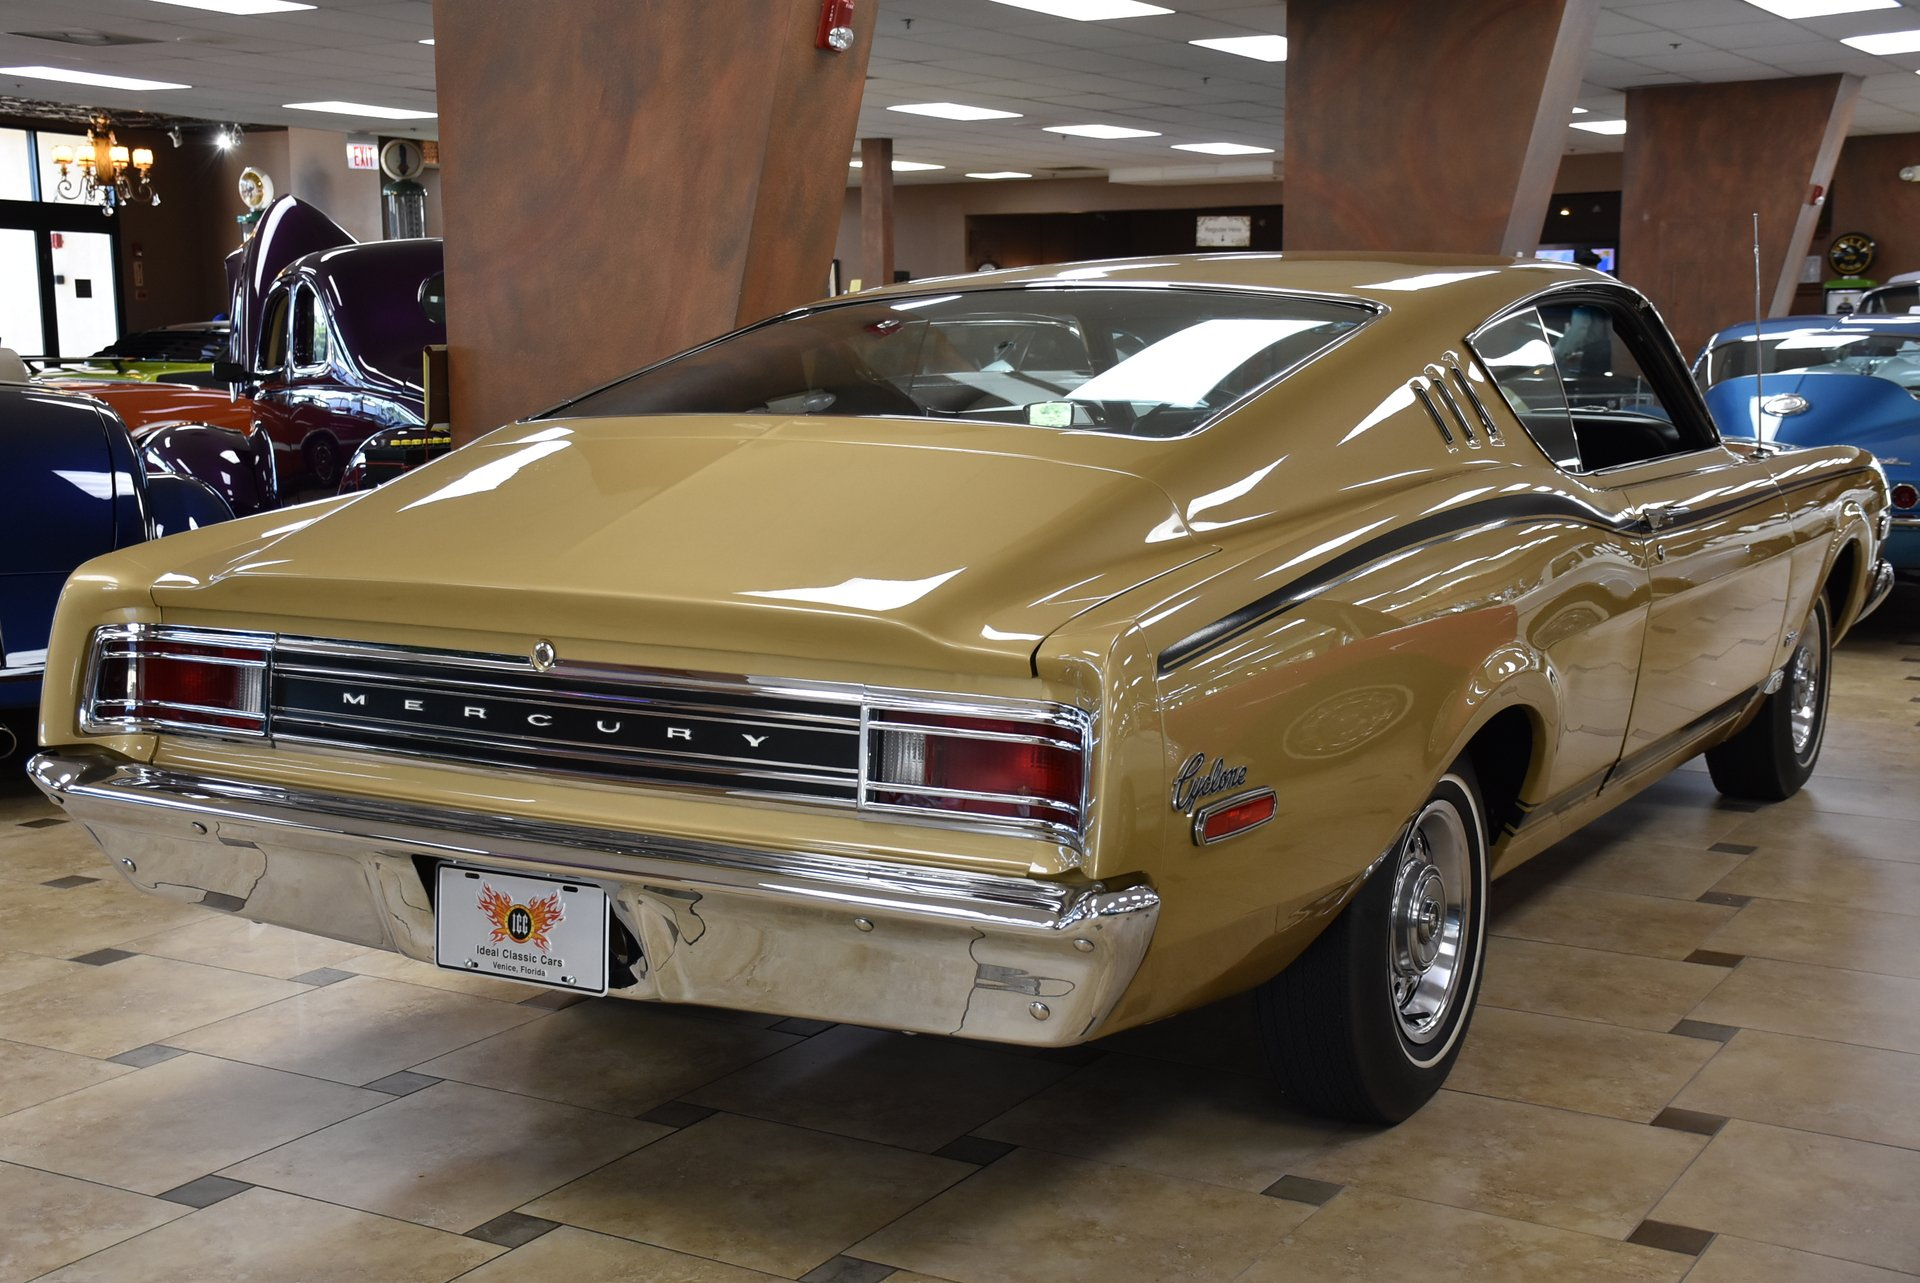 1968 Mercury Cyclone GT for sale #2927 | Motorious